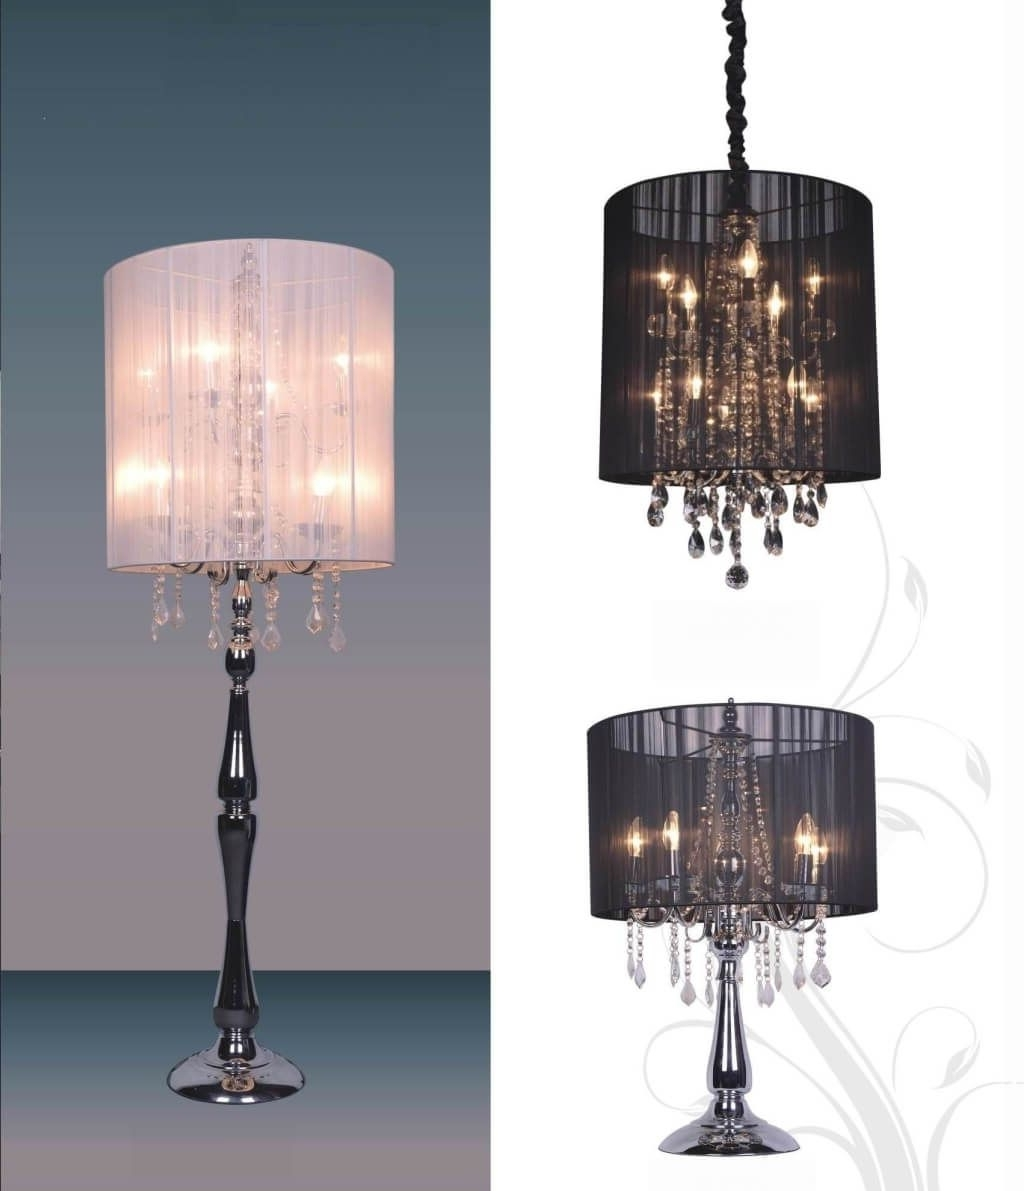 Small Crystal Chandelier Table Lamps within Most Up-to-Date Lighting: Enticing Small Chandelier Table Lamp With Aluminum Base